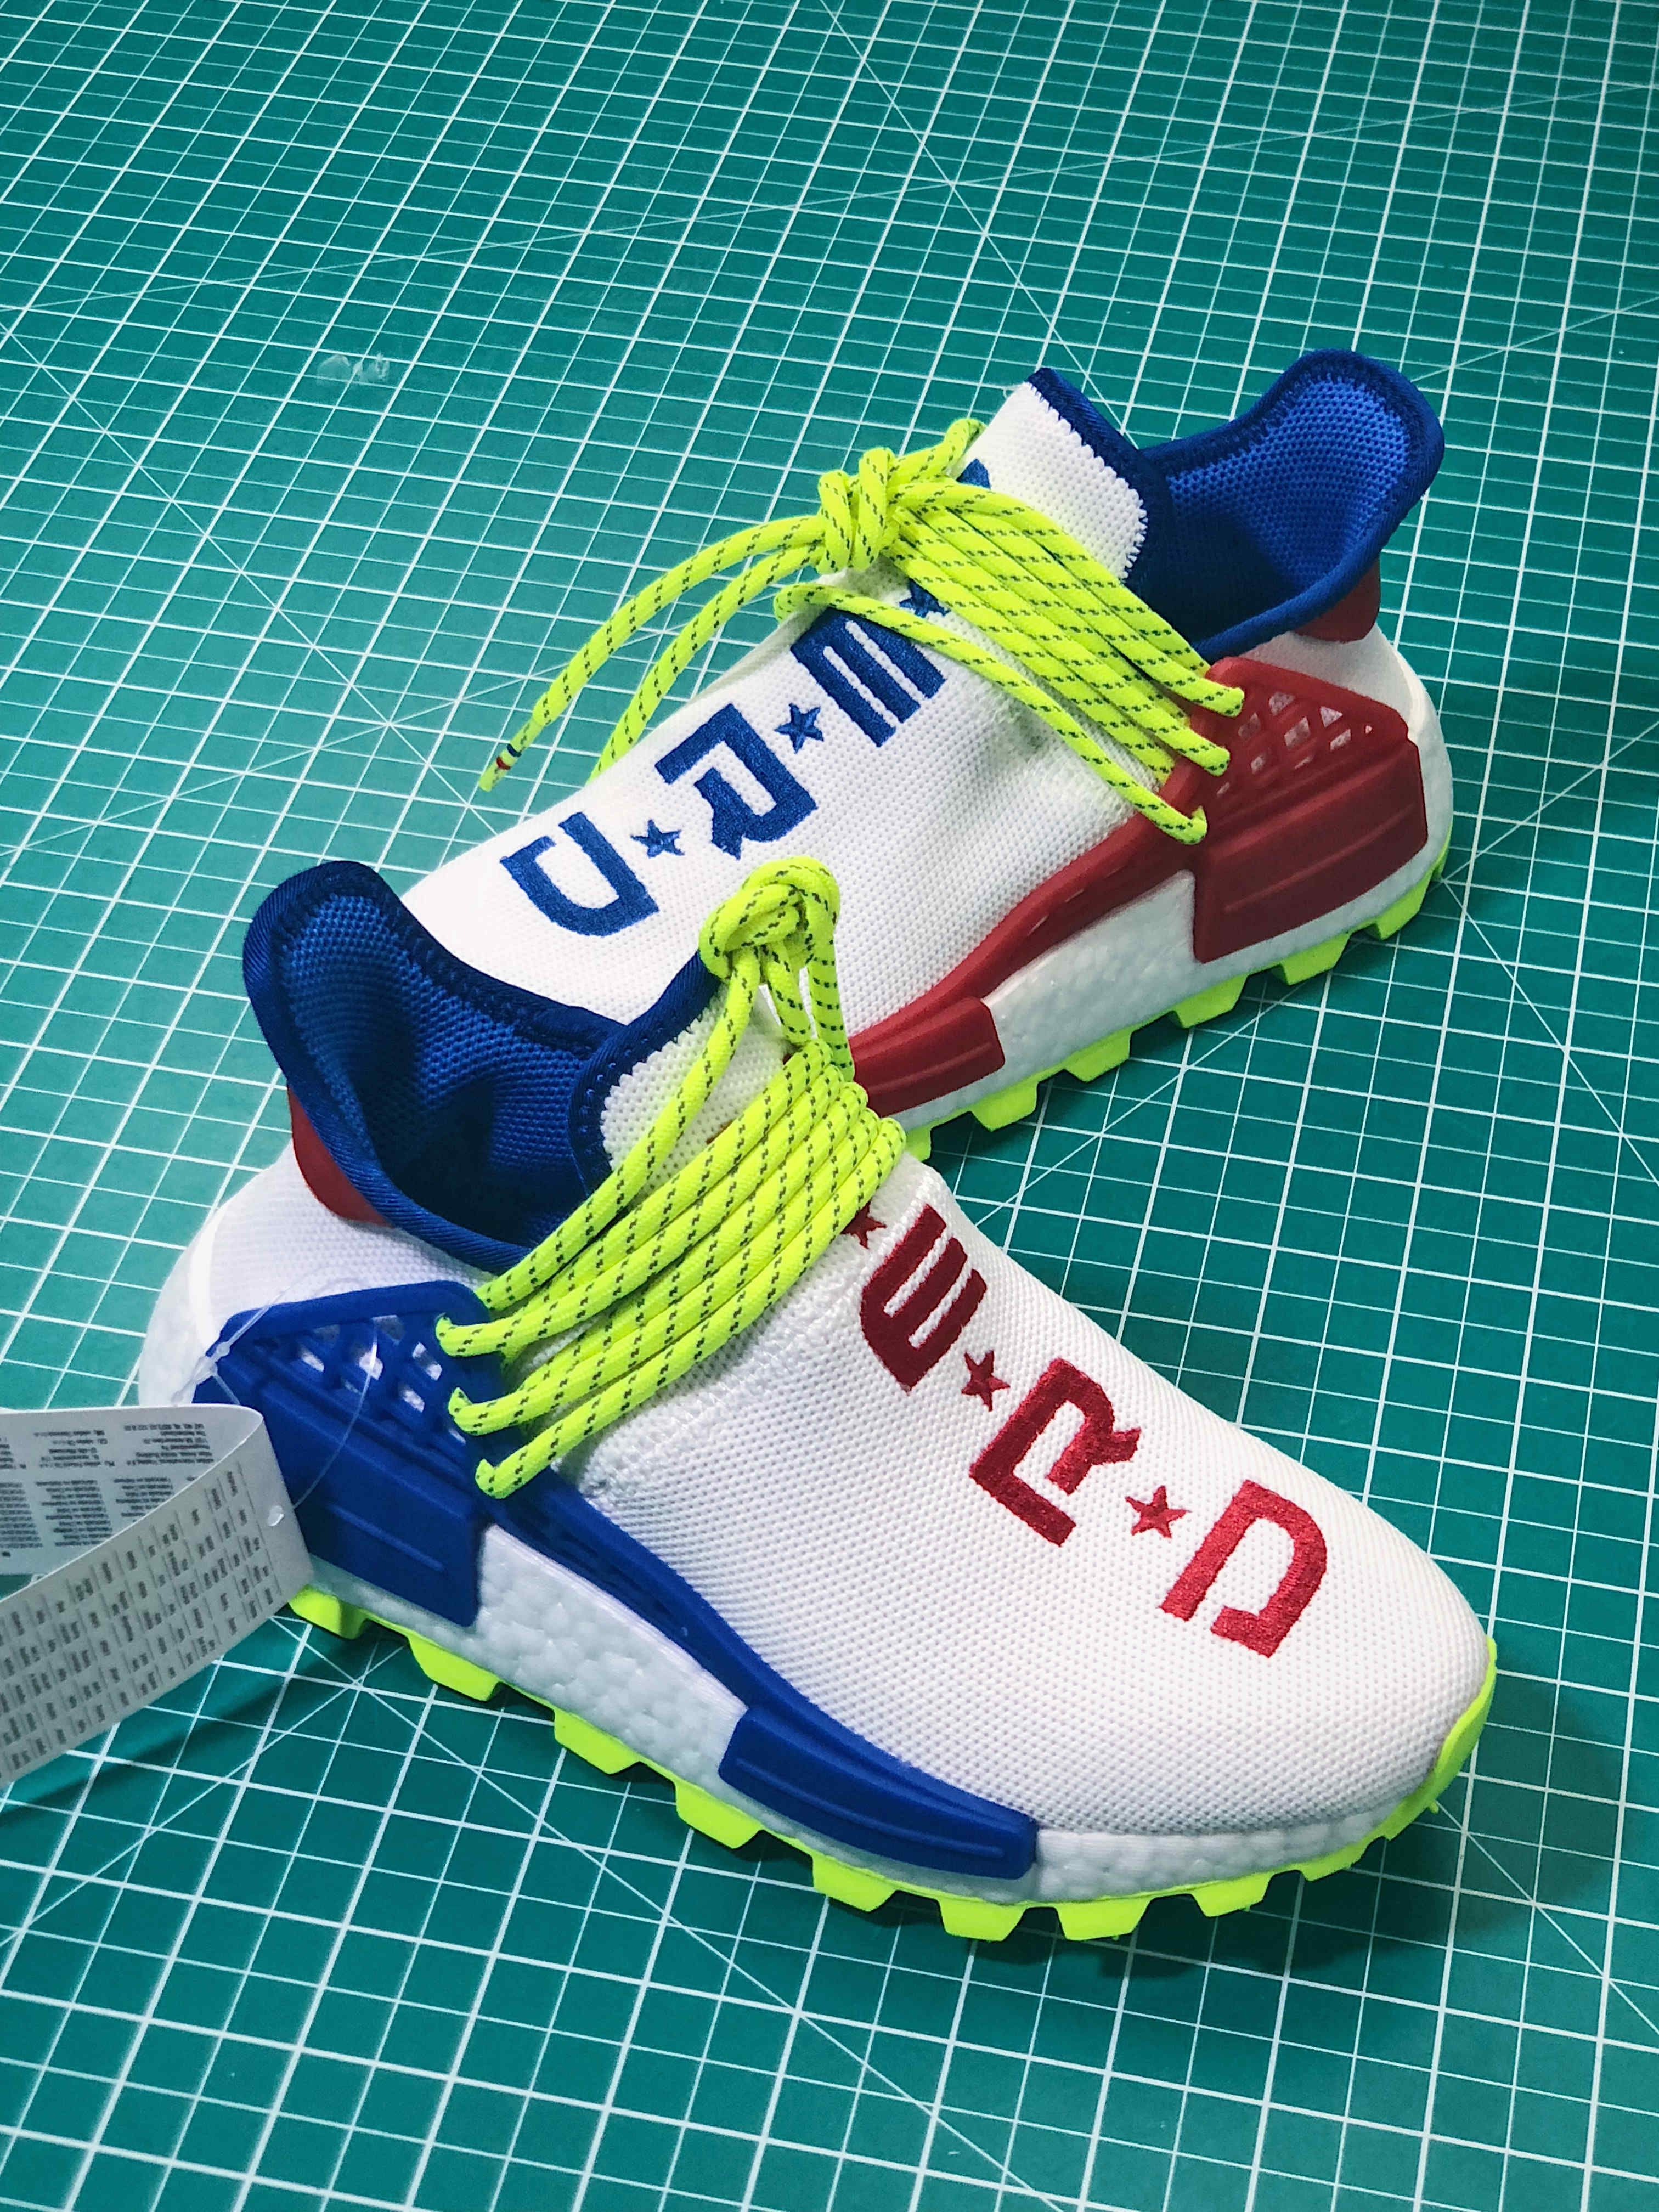 """Assoluto auditorium consolle  Creme x N.E.R.D x adidas PW Hu NMD """"Homecoming""""   Nmd, Homecoming, Adidas  nmd"""